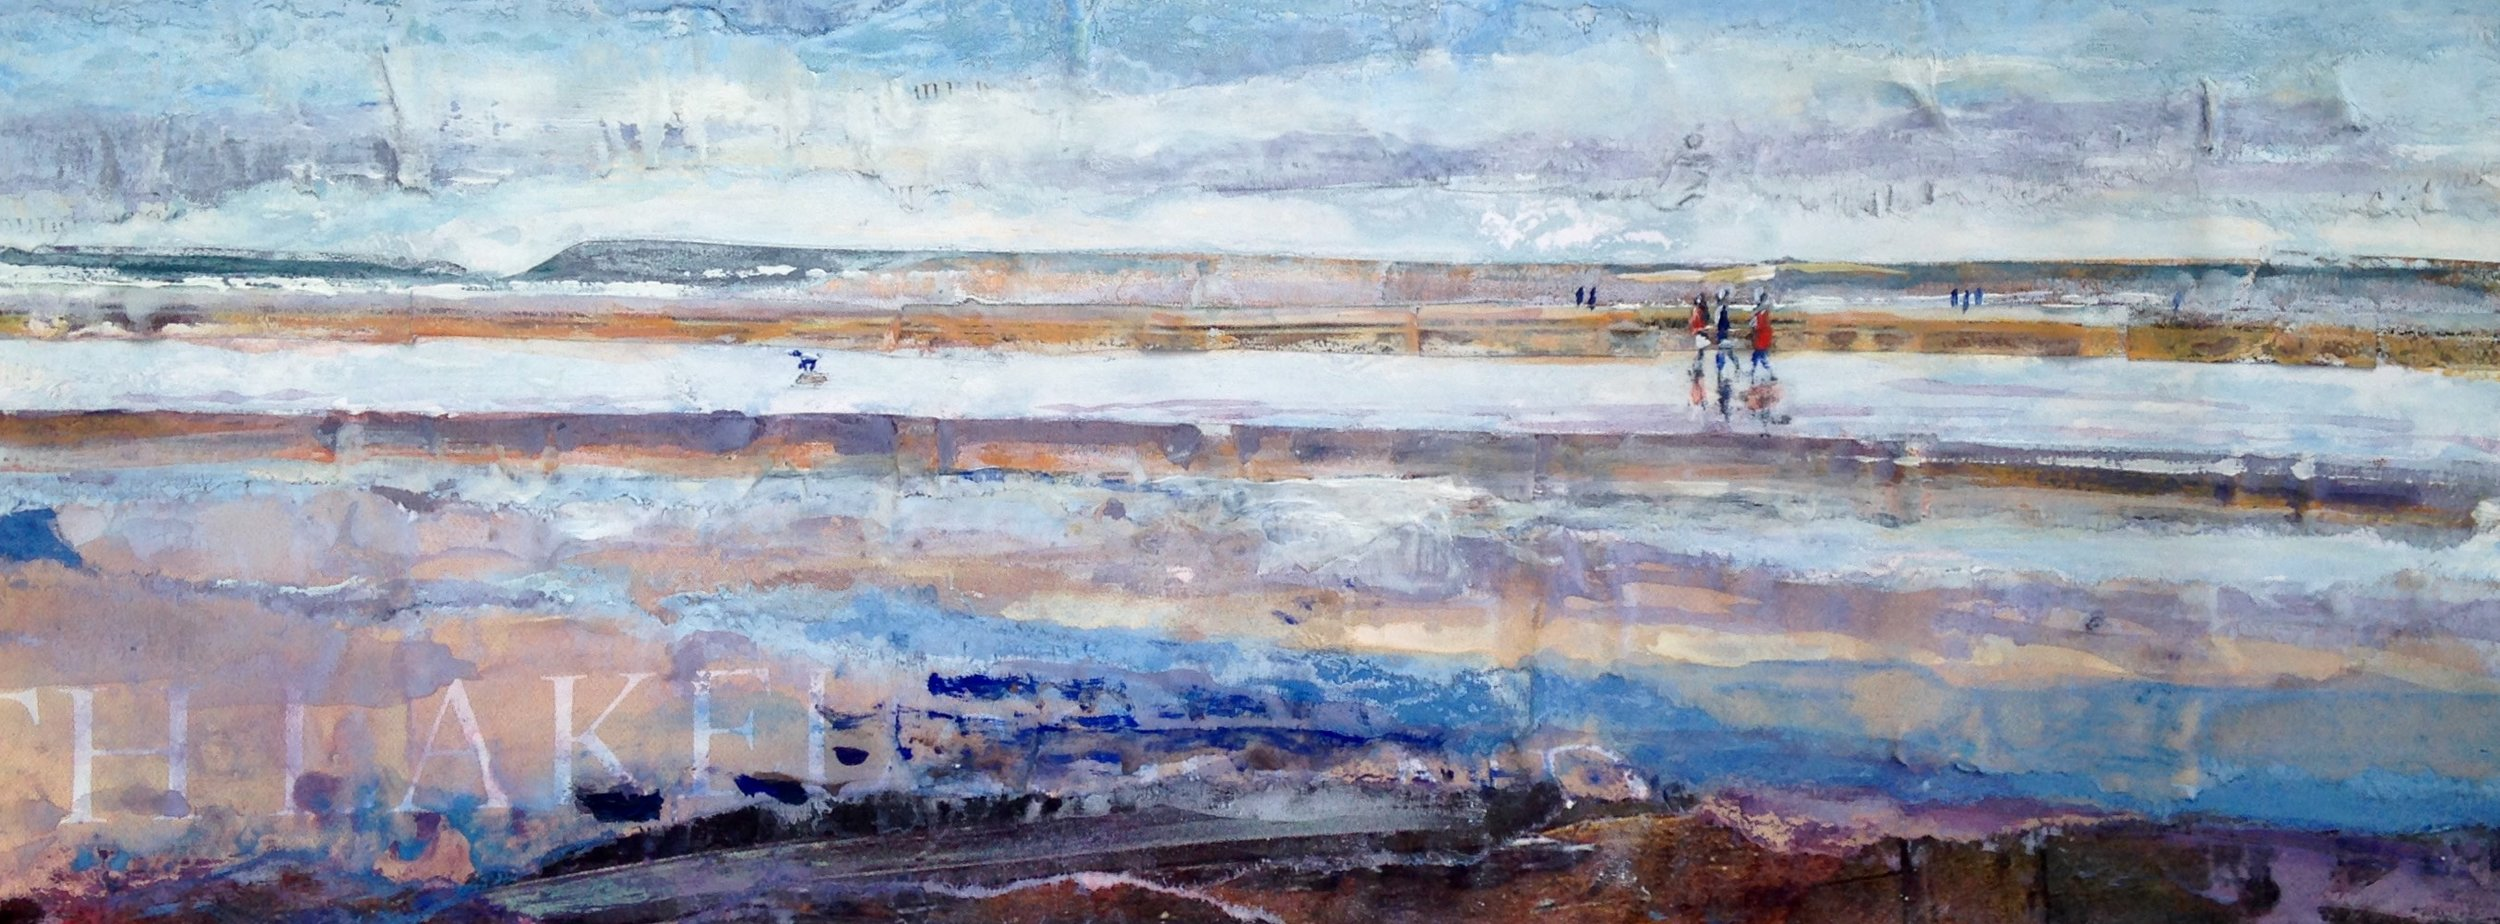 Artist: Viv Richards  Title: Wet Sands, Still Morning  Size: 30 x 43 cm  Medium: Mixed media  Price: £295   Buy Now